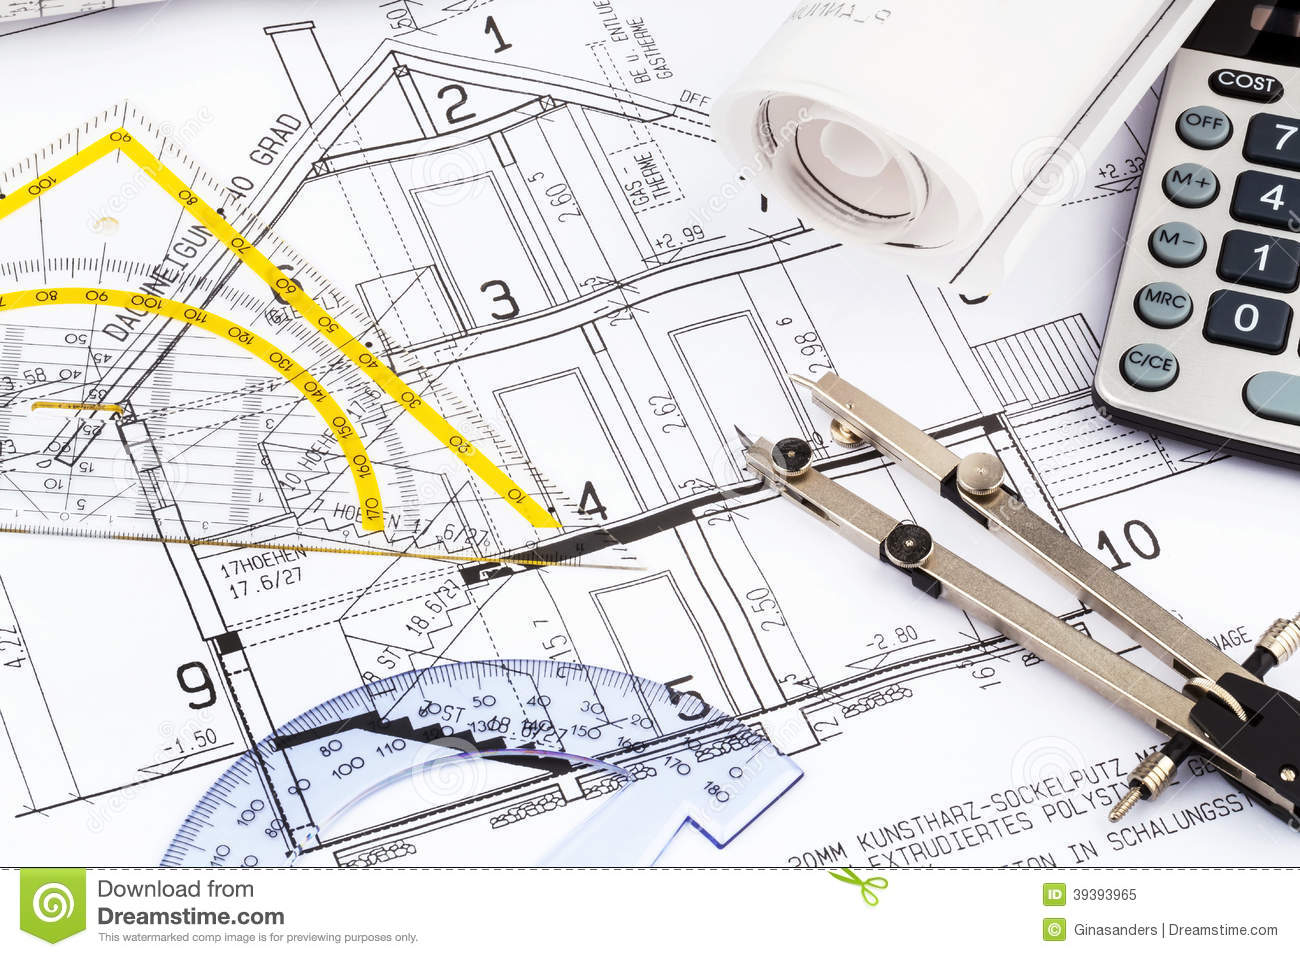 House plan with calculator stock image image of cost 39393965 download house plan with calculator stock image image of cost 39393965 malvernweather Gallery